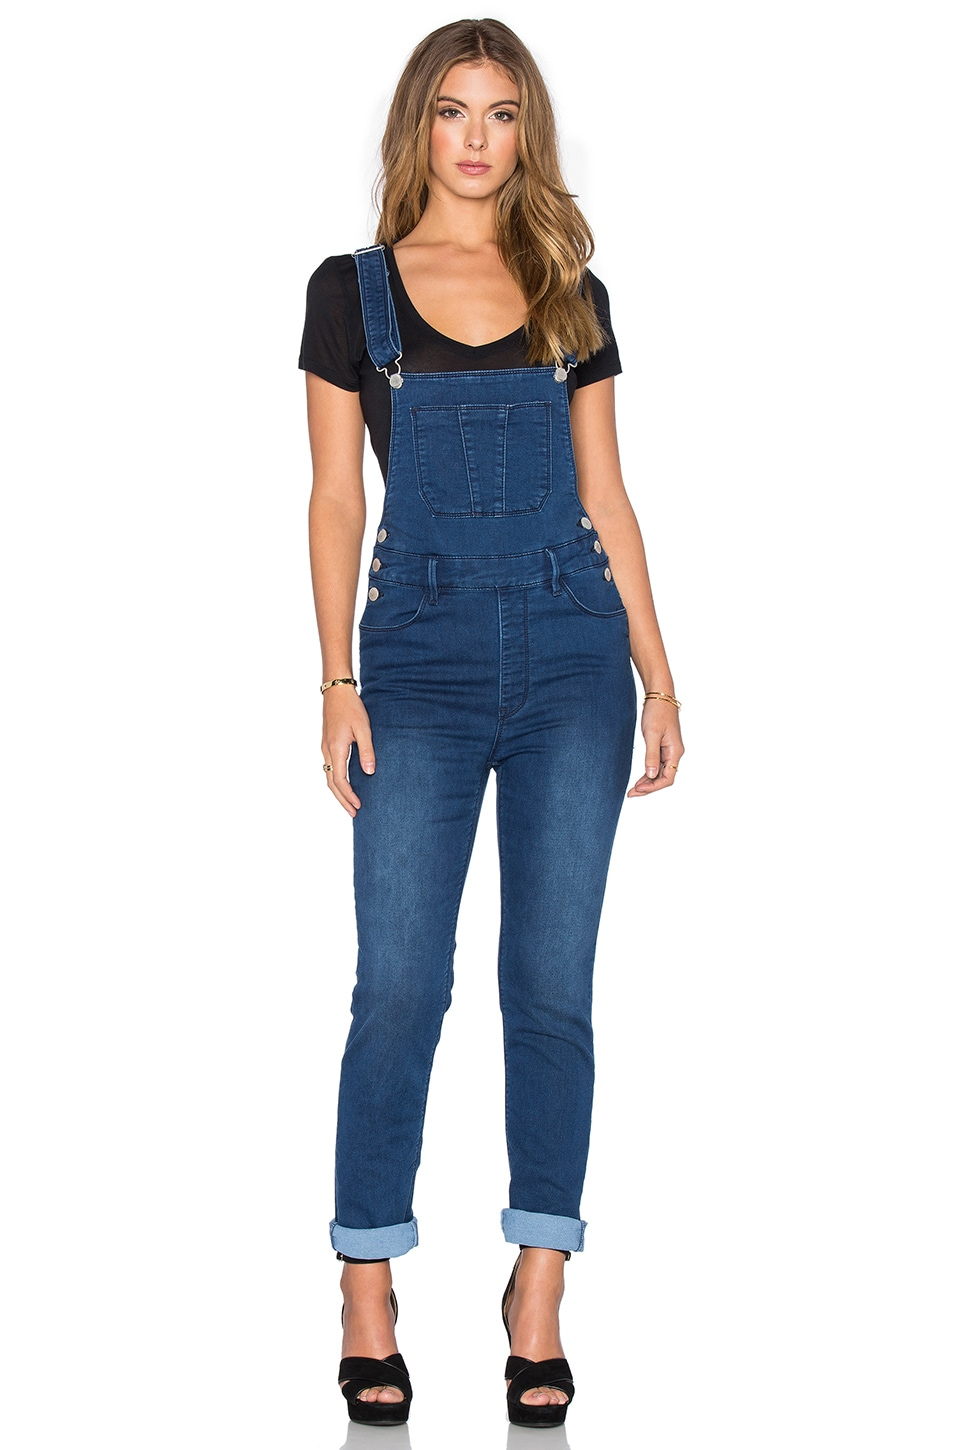 RES Denim Hang Loose Overalls in Inked